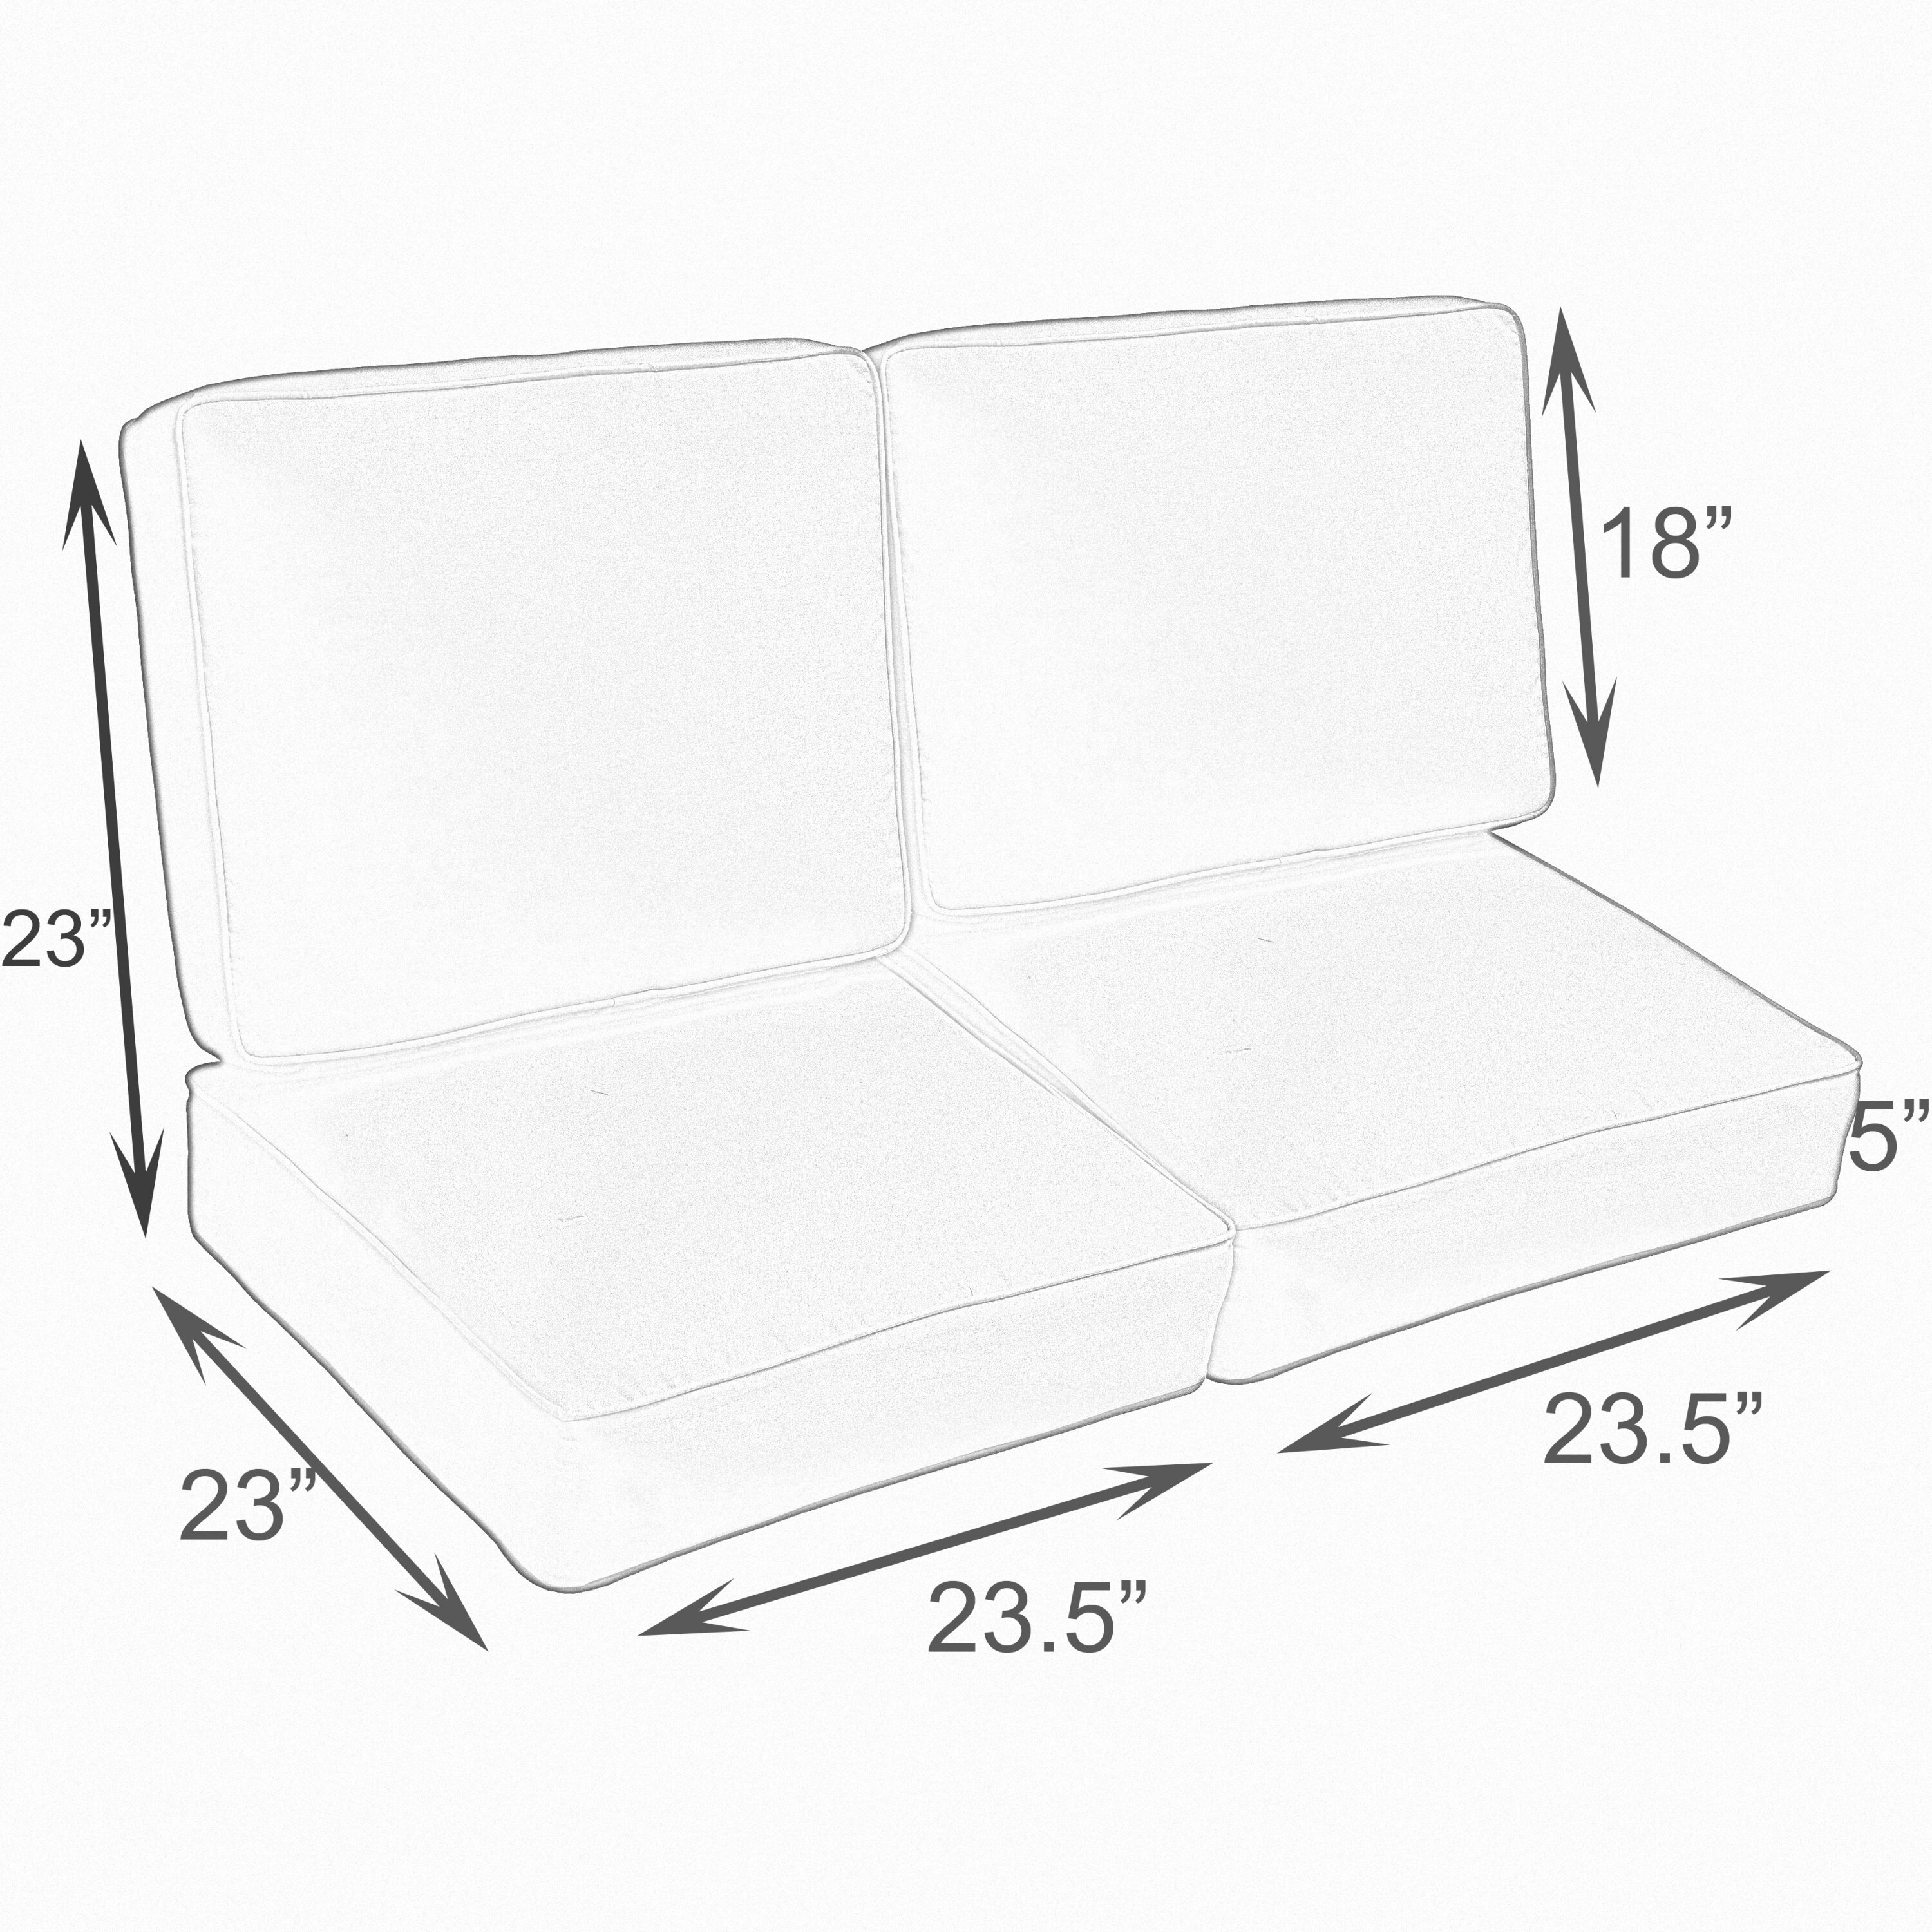 1877104742 additionally 1582613 also Giotto bed besides Mogg Reverse Chair moreover Cosco Cb 89 Badminton Racquet Pack Of 2 1014501. on king sofa beds